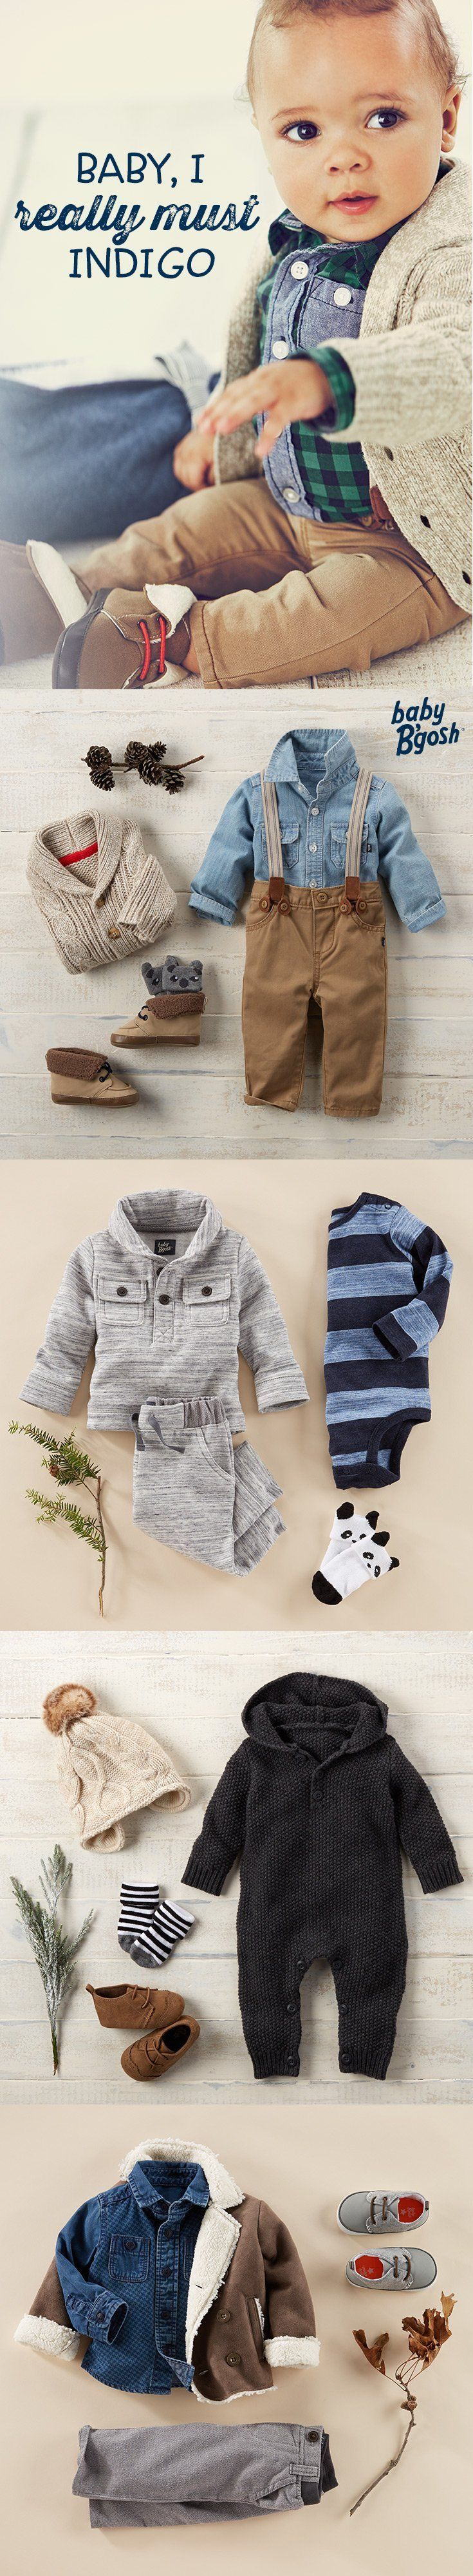 Pin by Lidia Carrillo on Baby Outfits 3 Pinterest